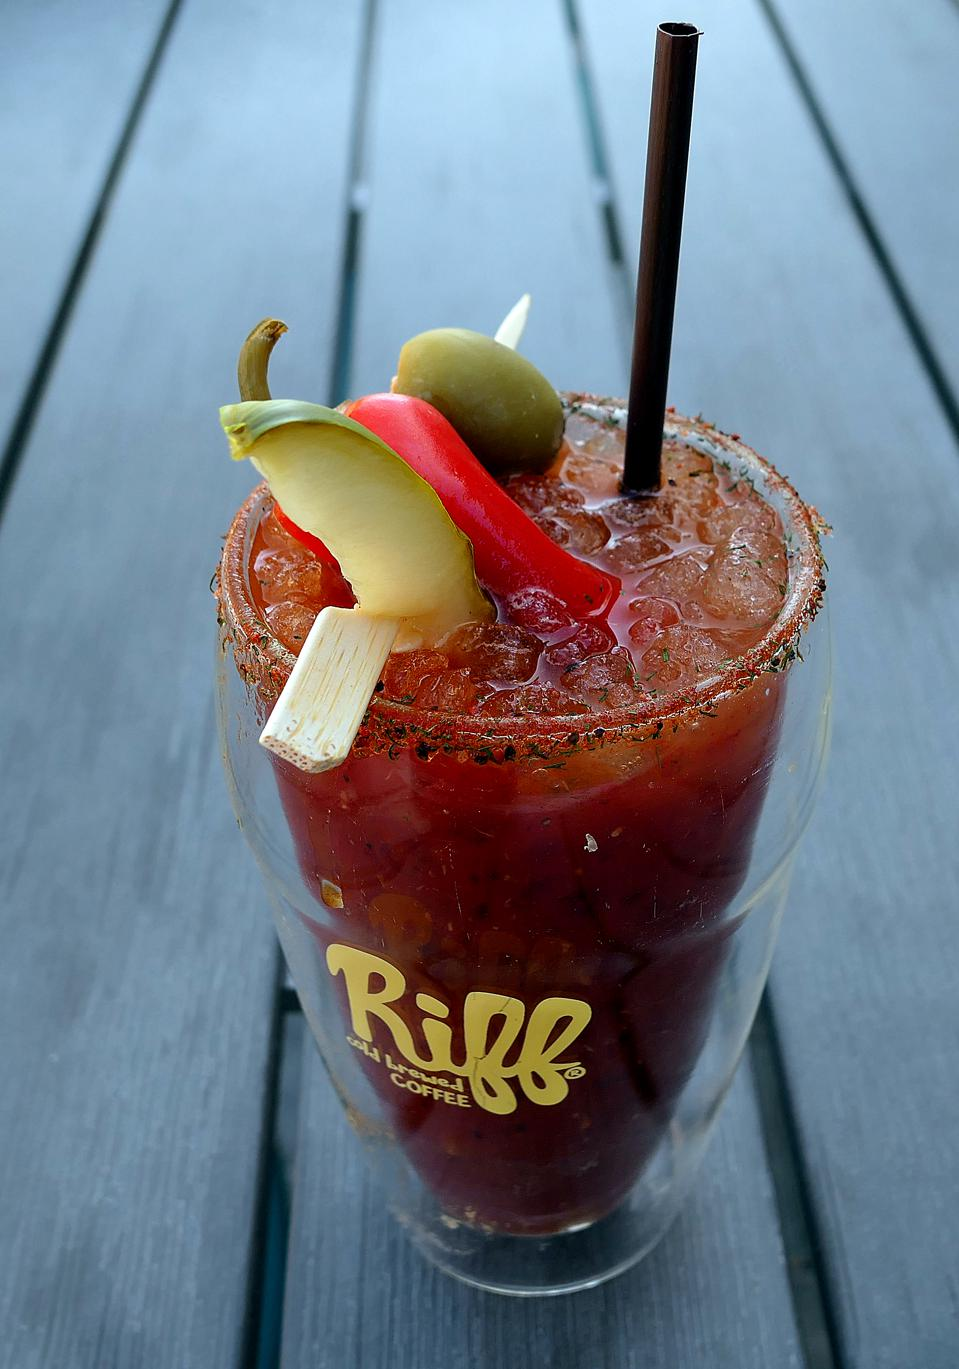 Cold brew coffee Bloody Mary at Riff's